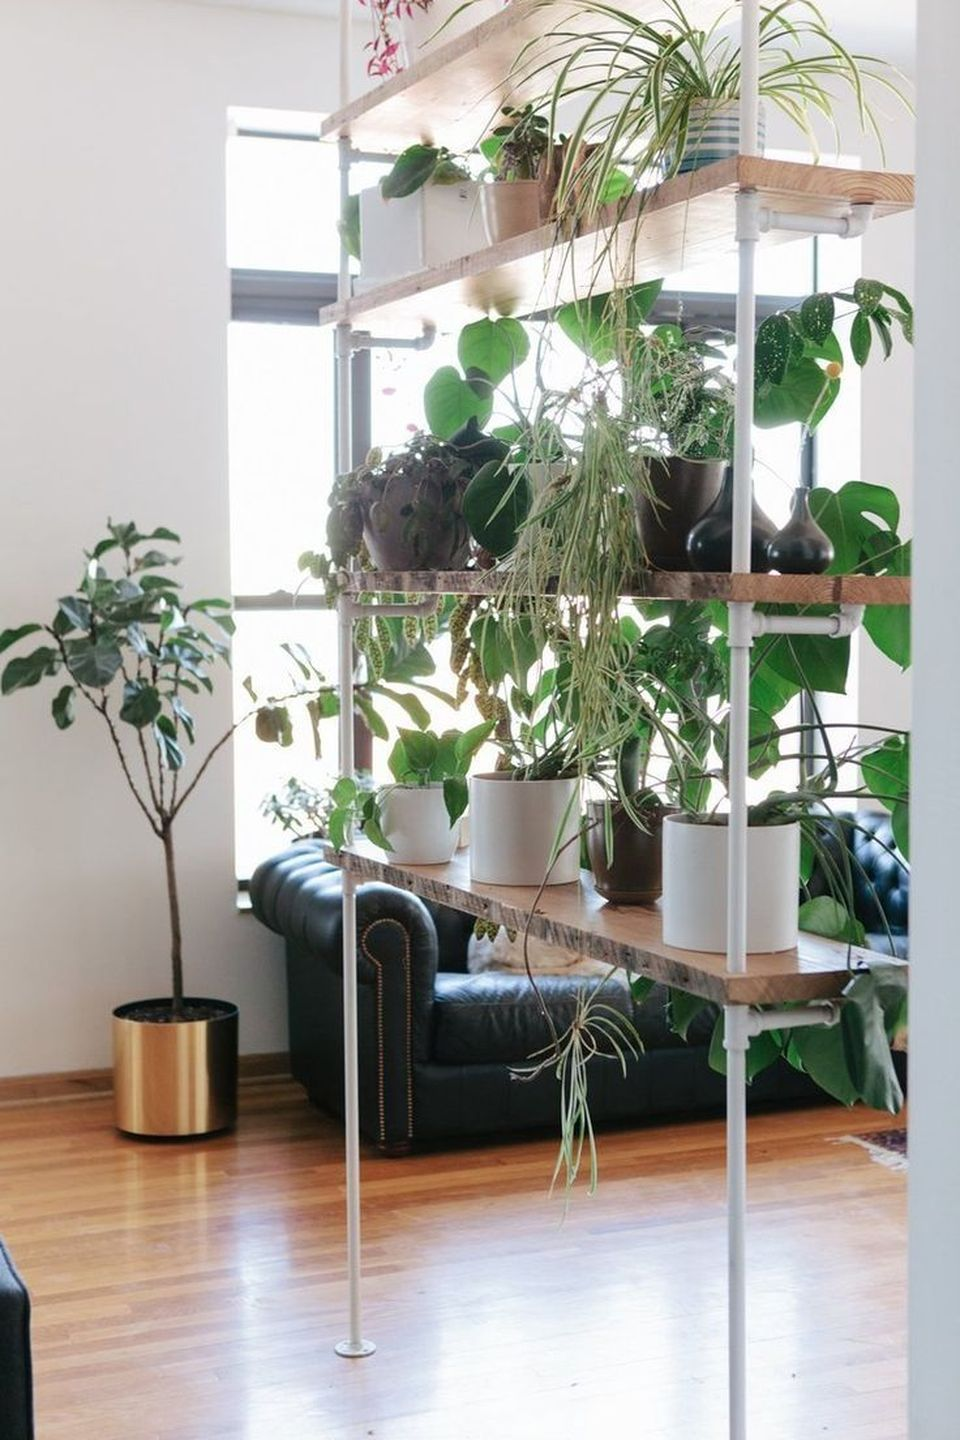 Cool Plant Stand Design Ideas for Indoor Houseplant 18 - Rockindeco